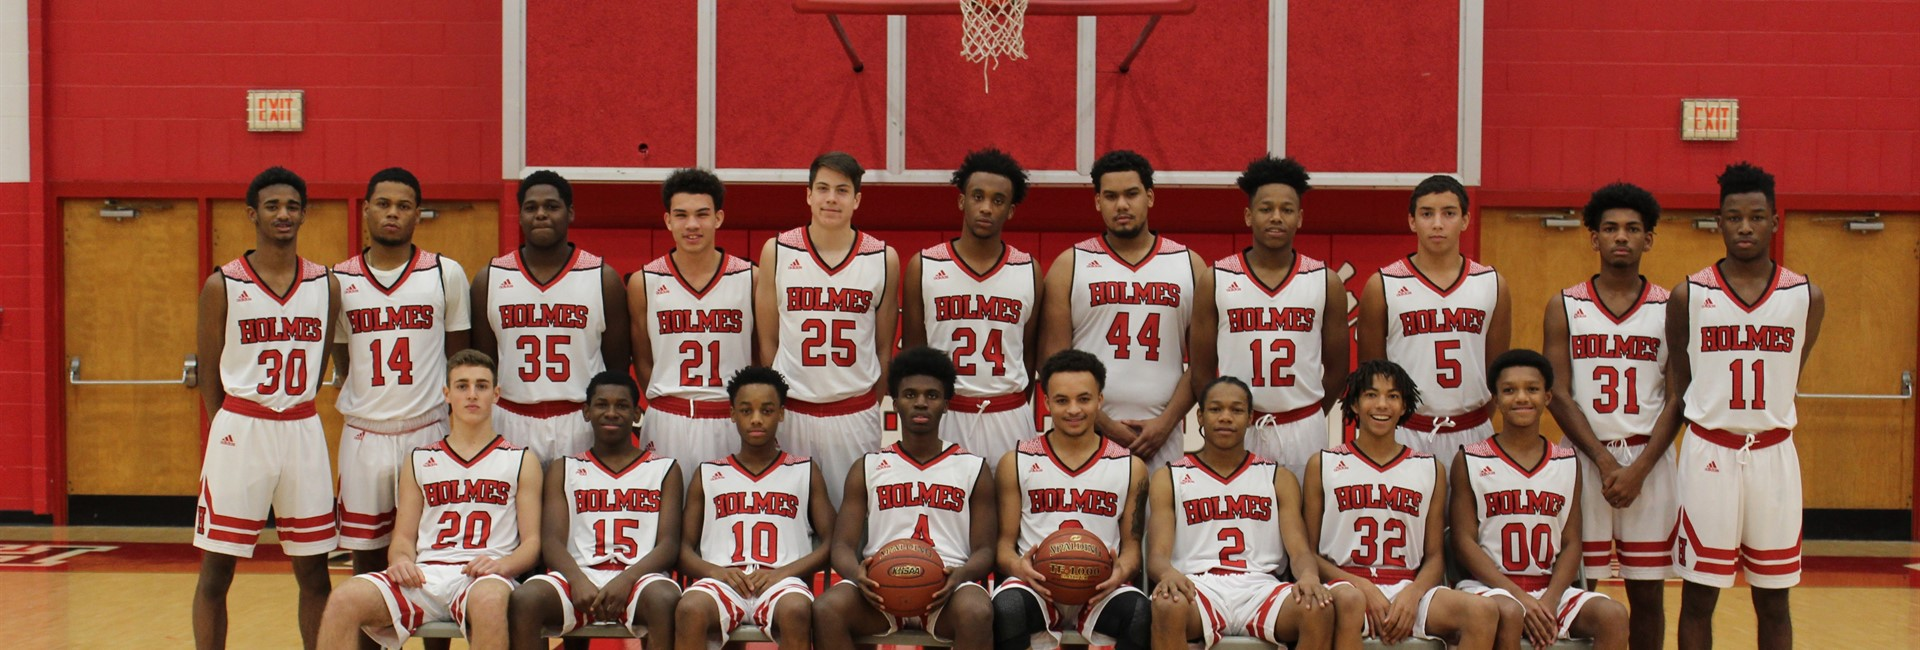 Holmes High School Boys Basketball Team